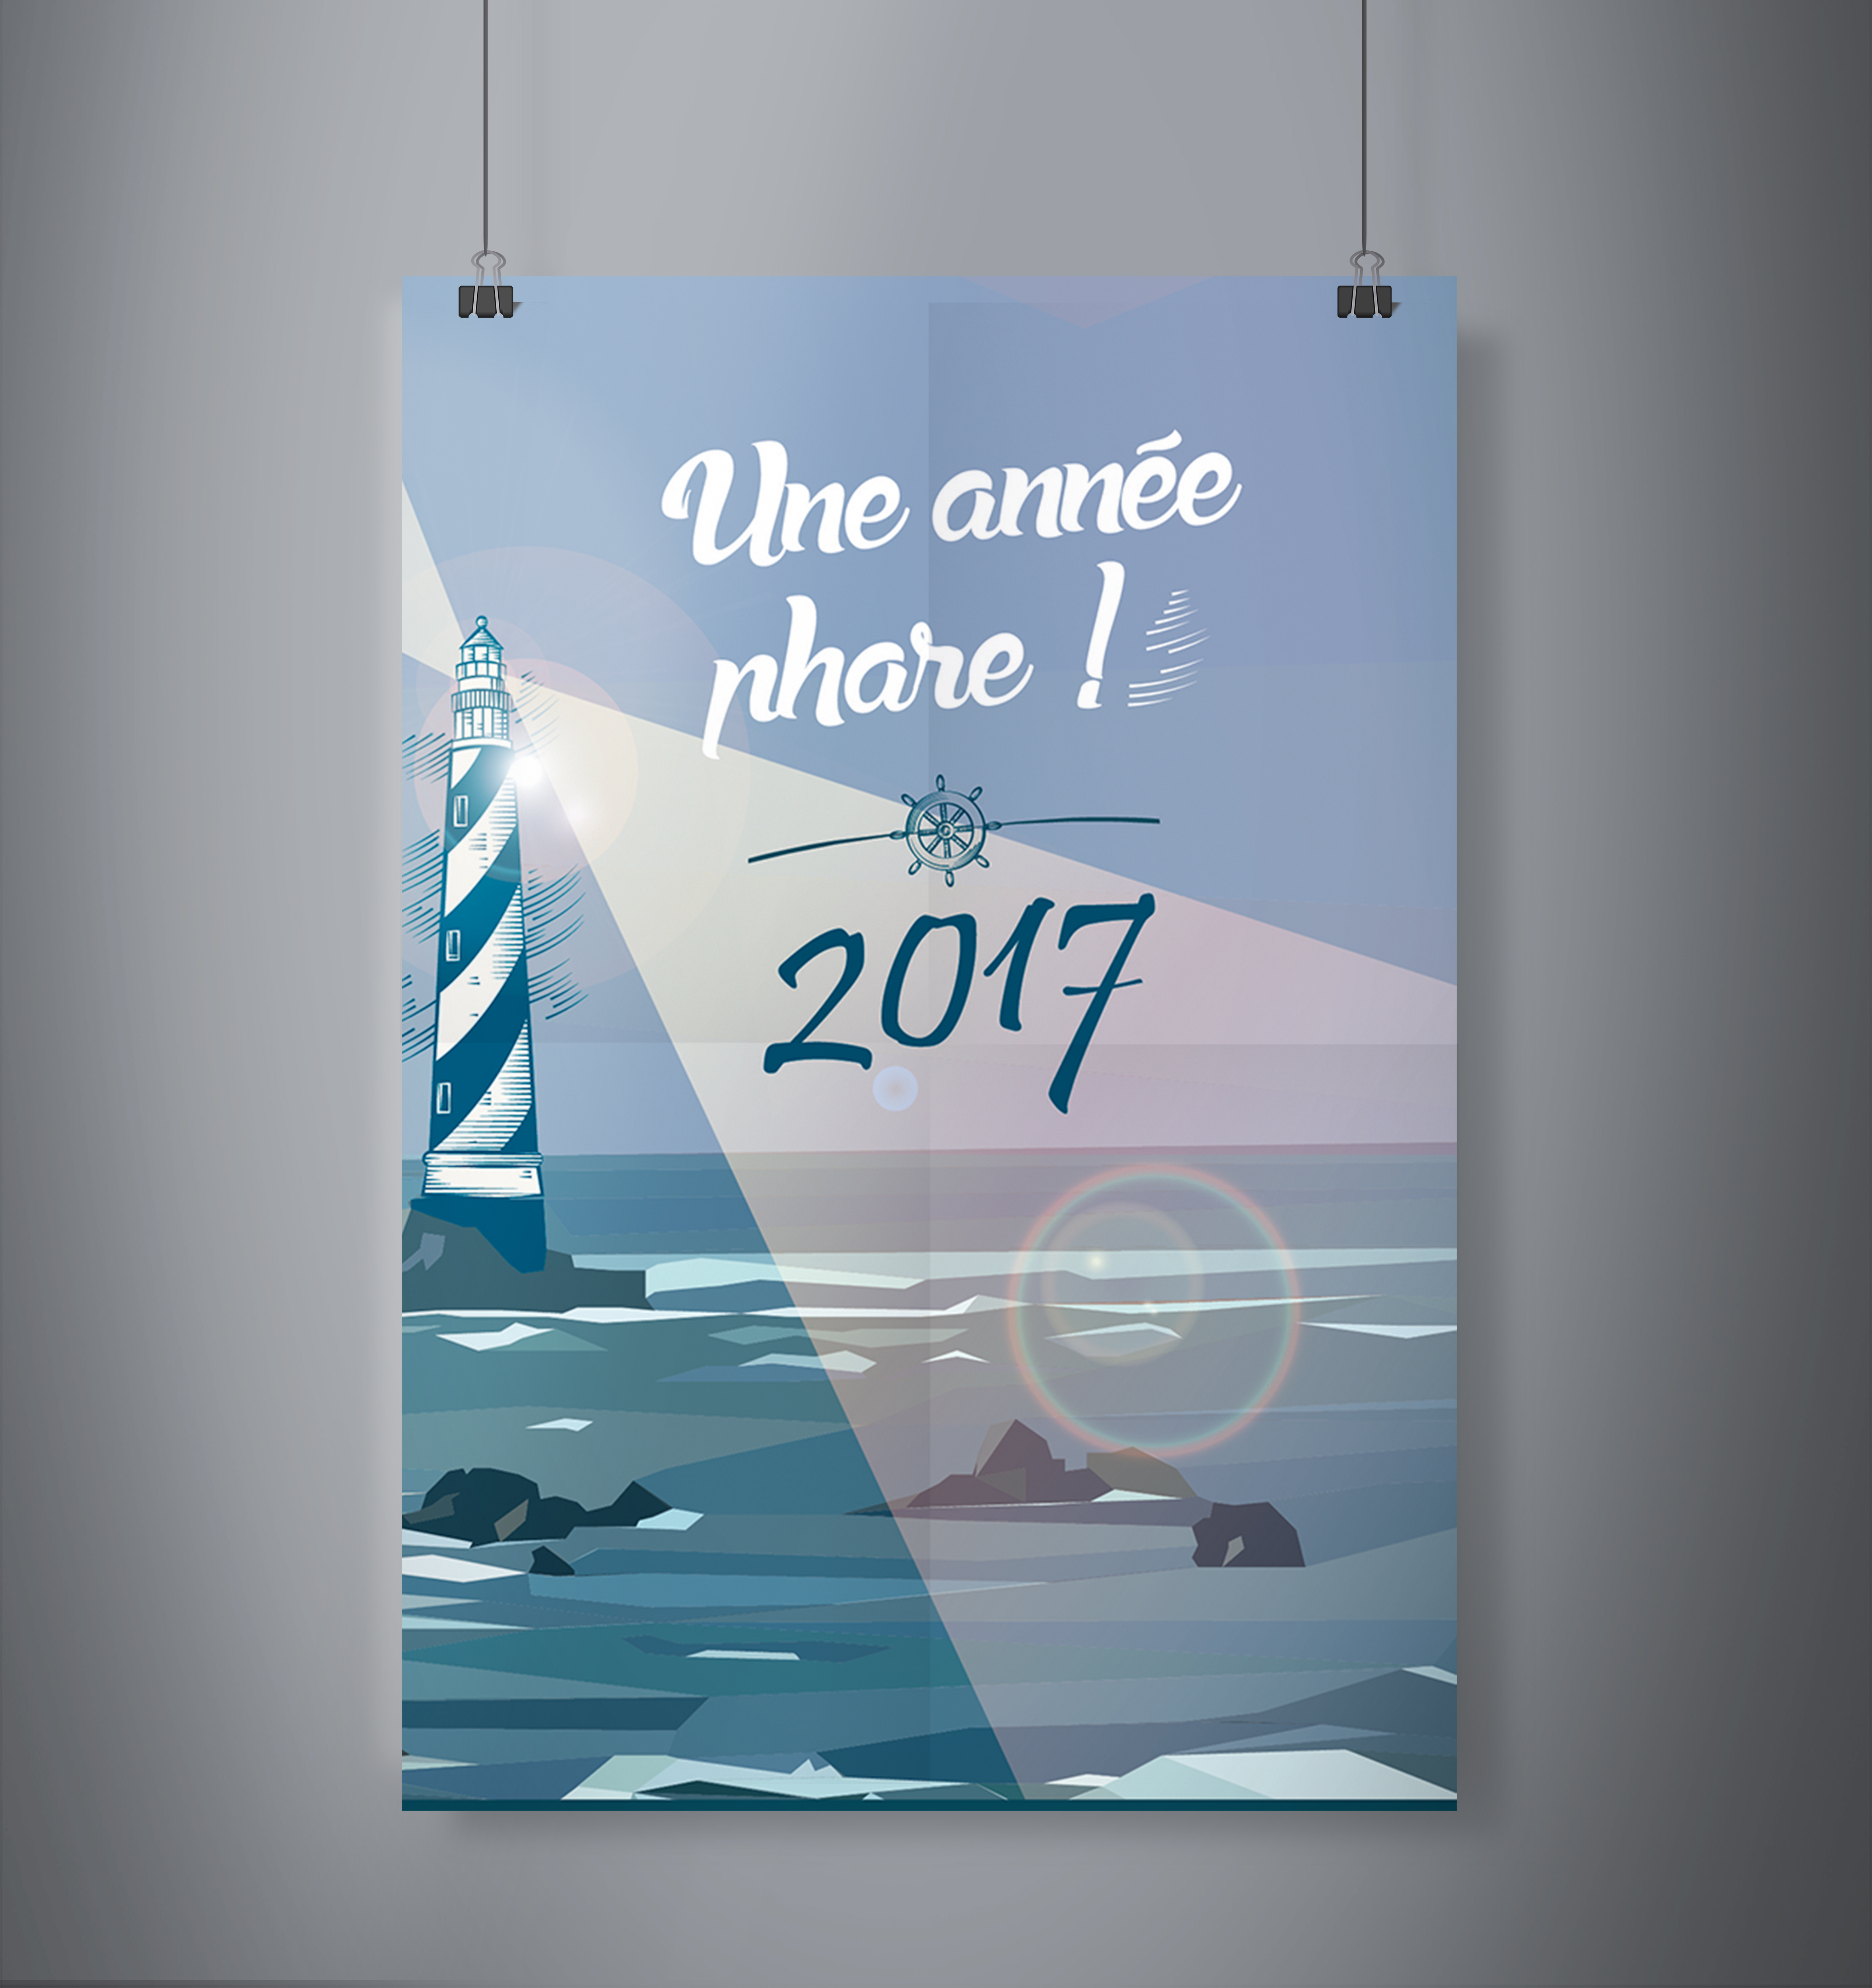 Une année phare 2017